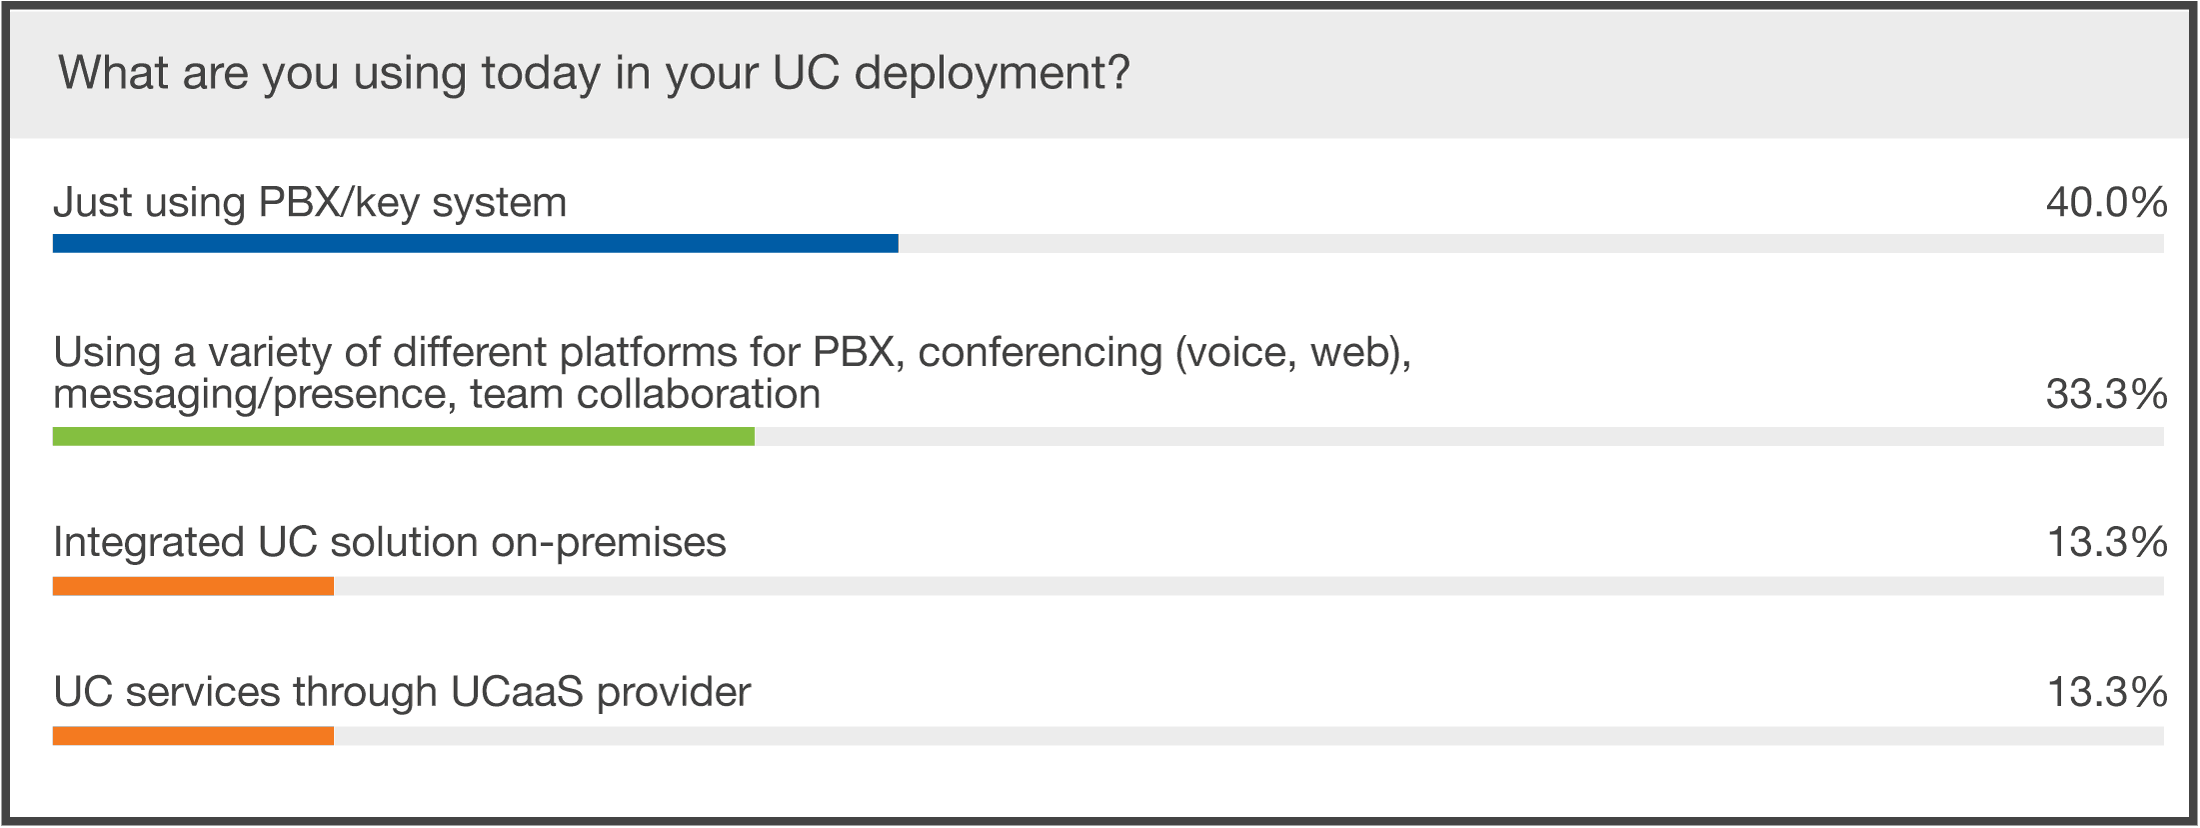 small business uc deployments webinar poll results